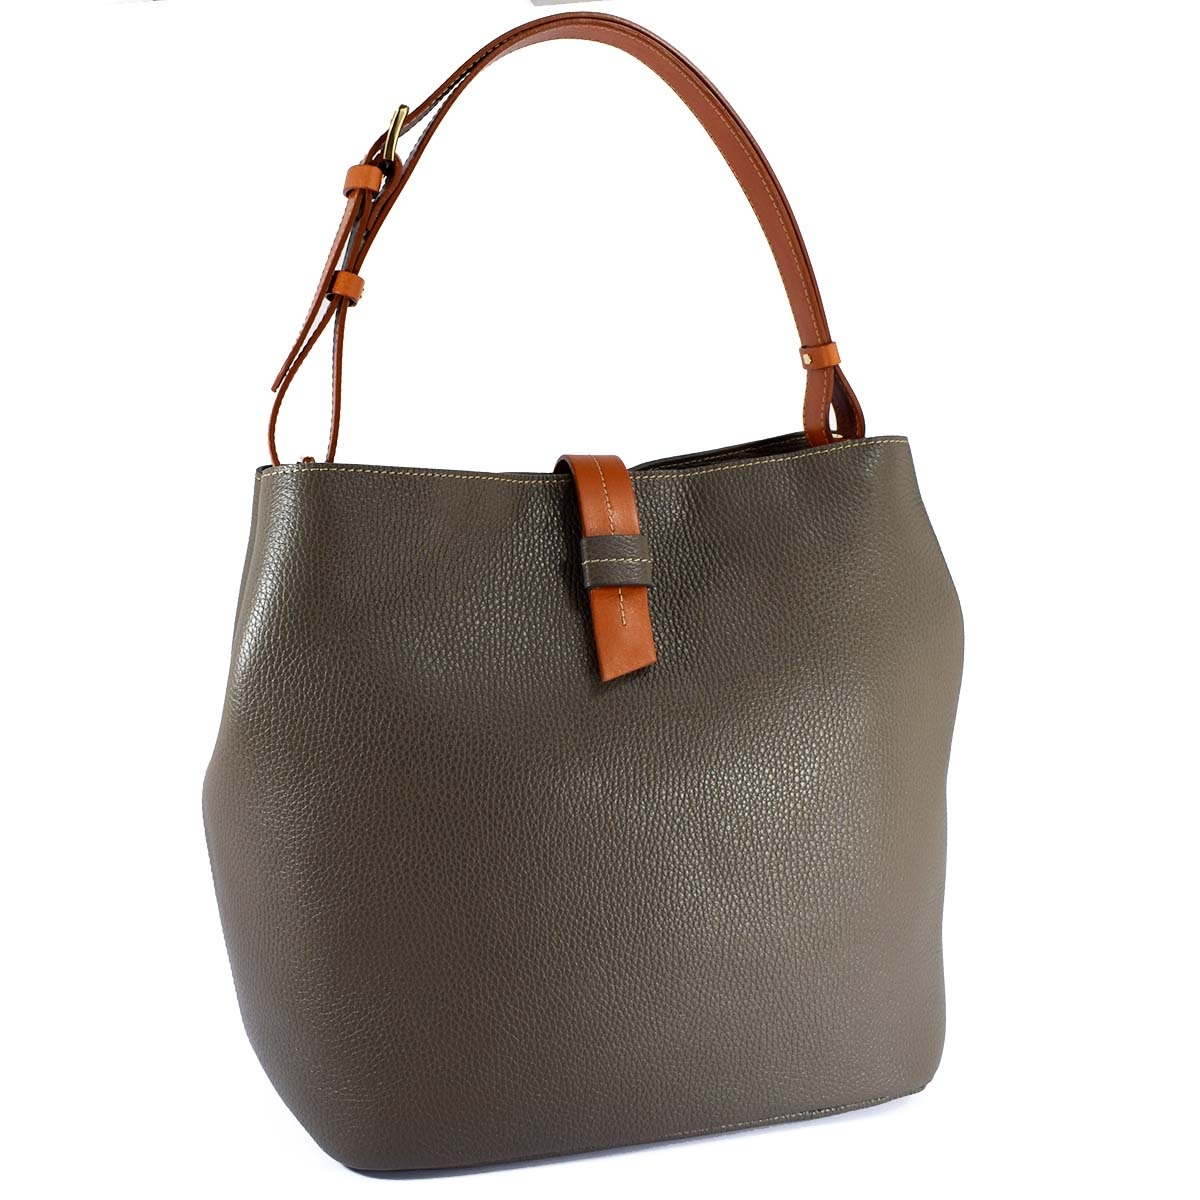 12095 Shoulder bag by Bottega Fiorentina